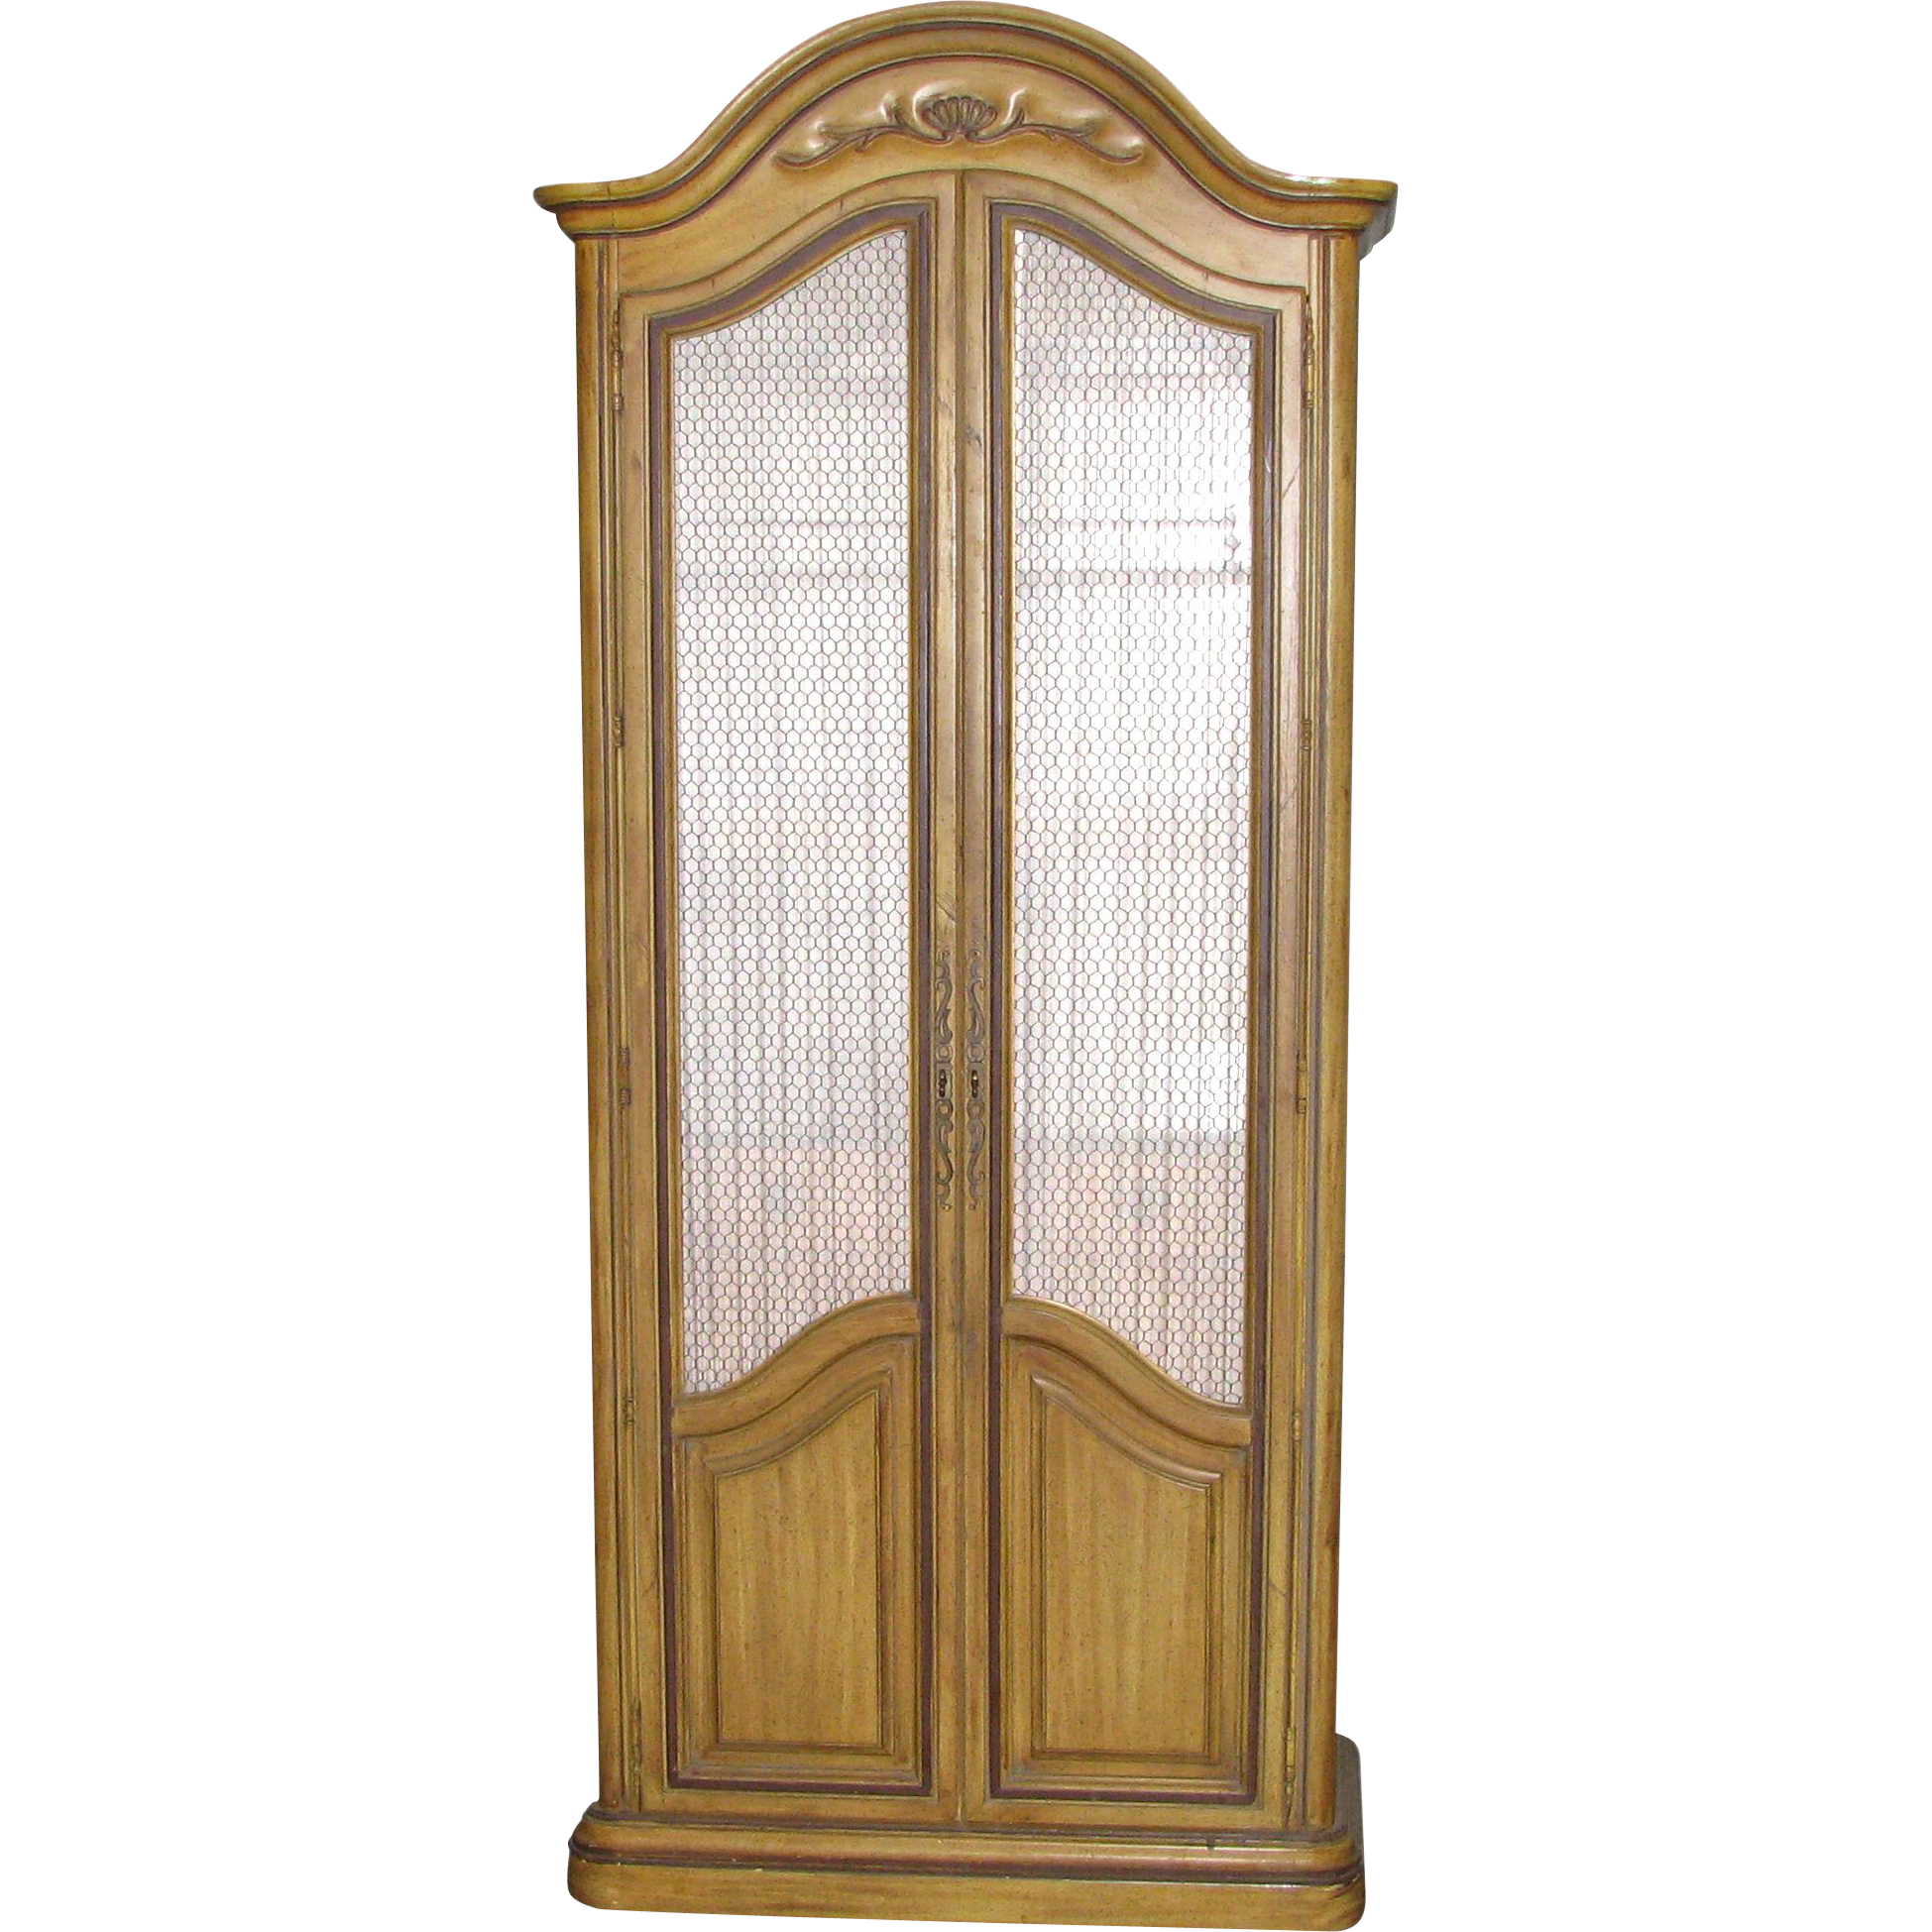 French style armoire with chicken wire doors